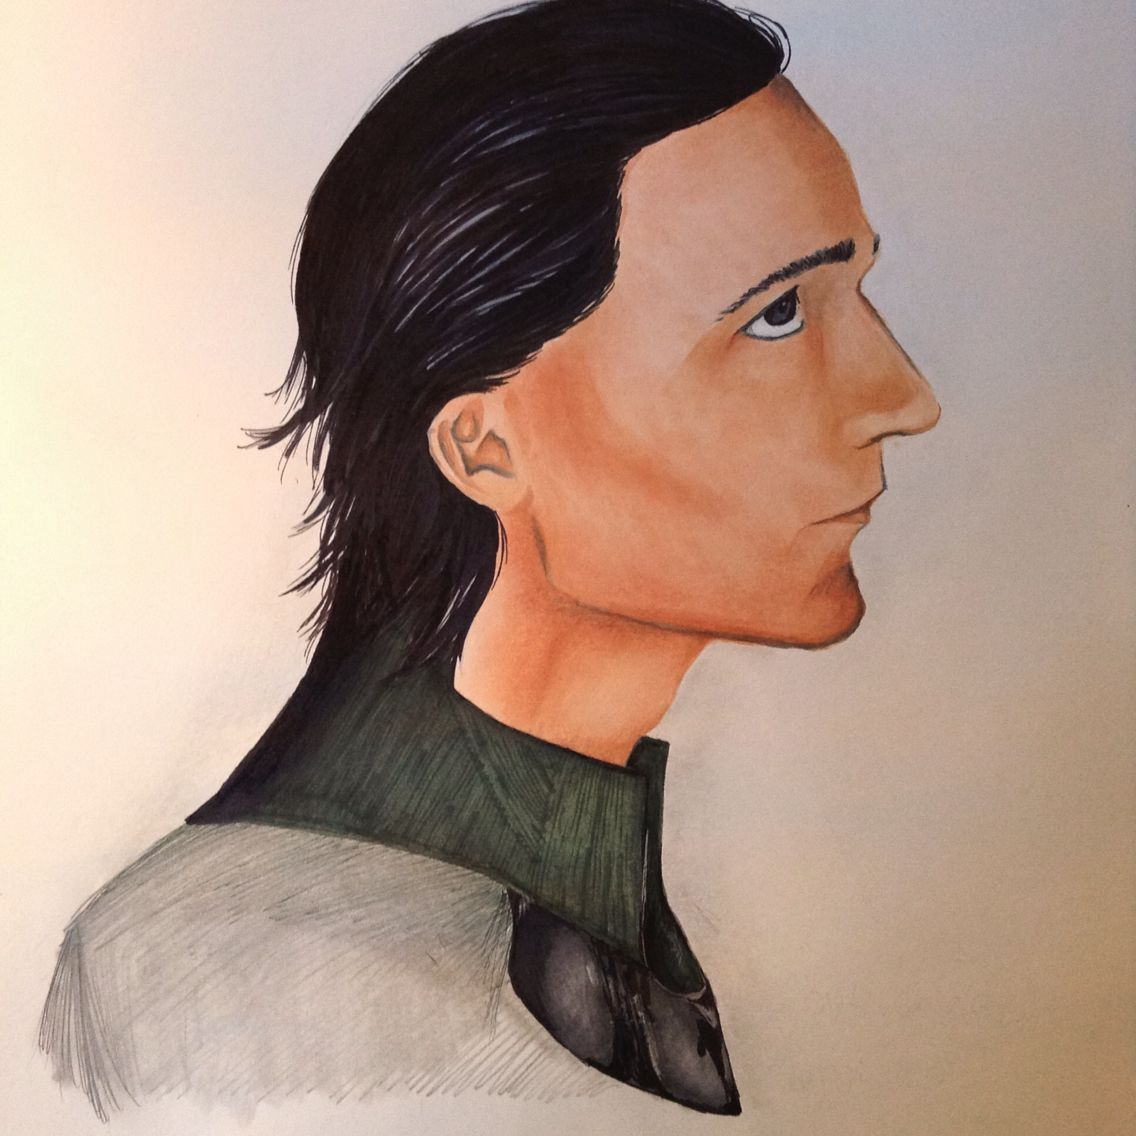 Loki in Copic by The Artists Bow.